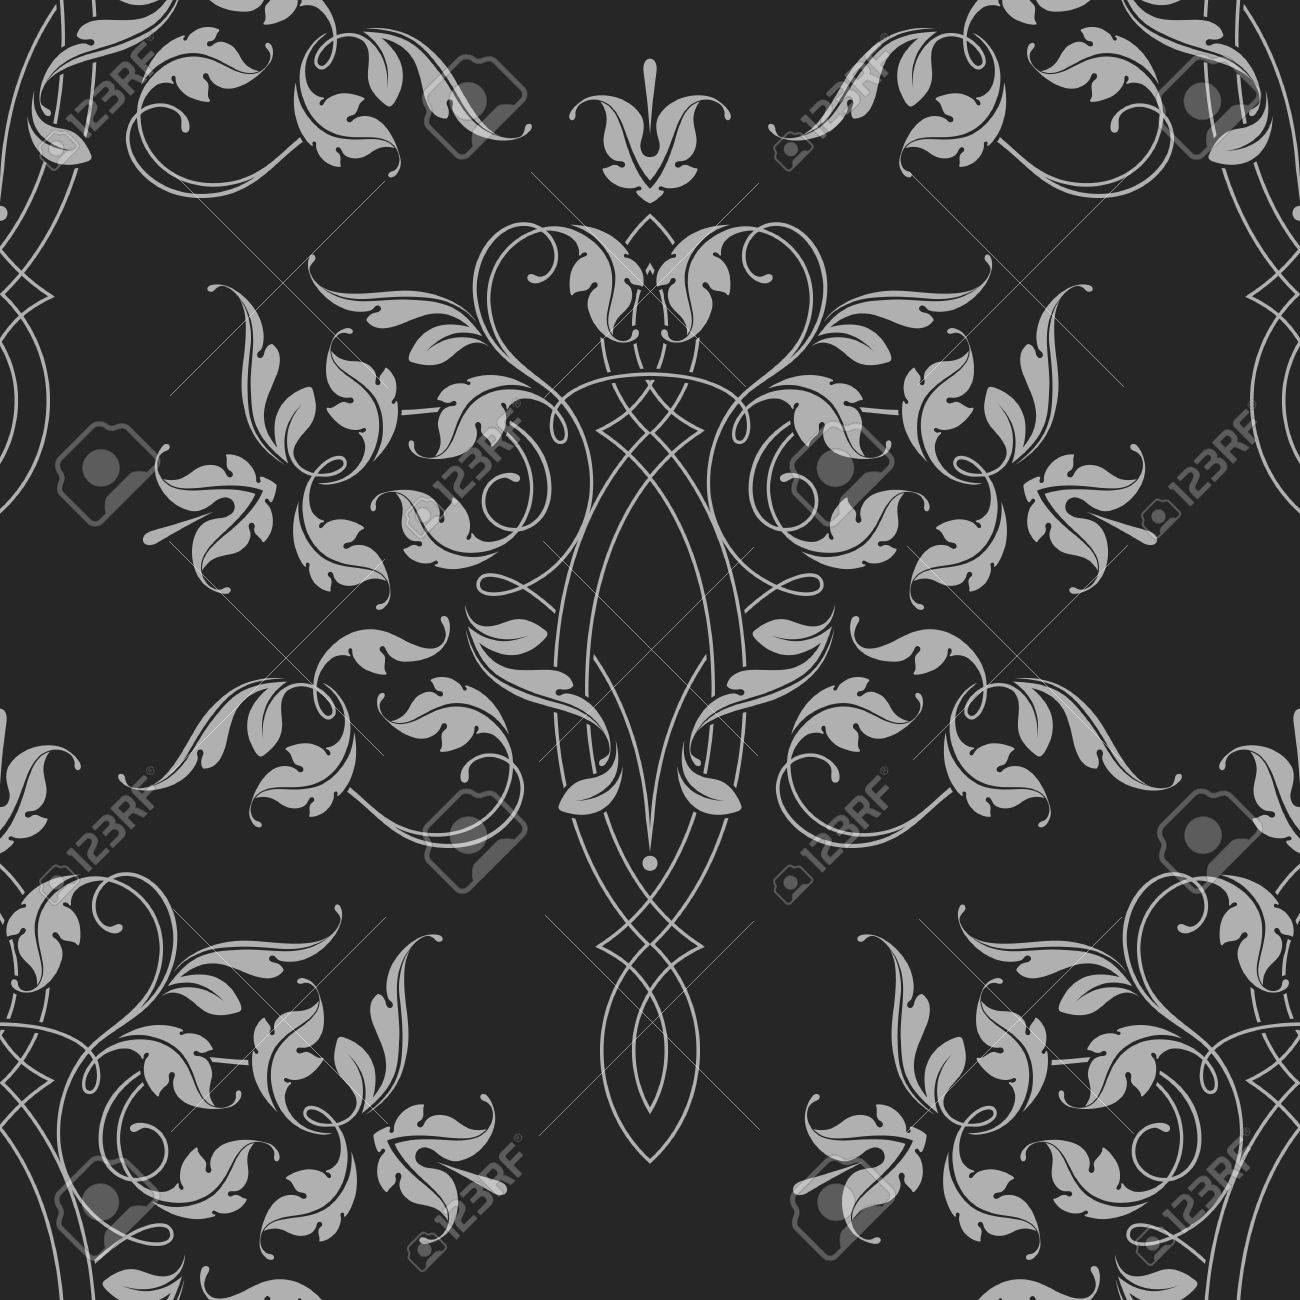 Seamless Pattern. Classical Ornament. Vector Illustration. - 64883272